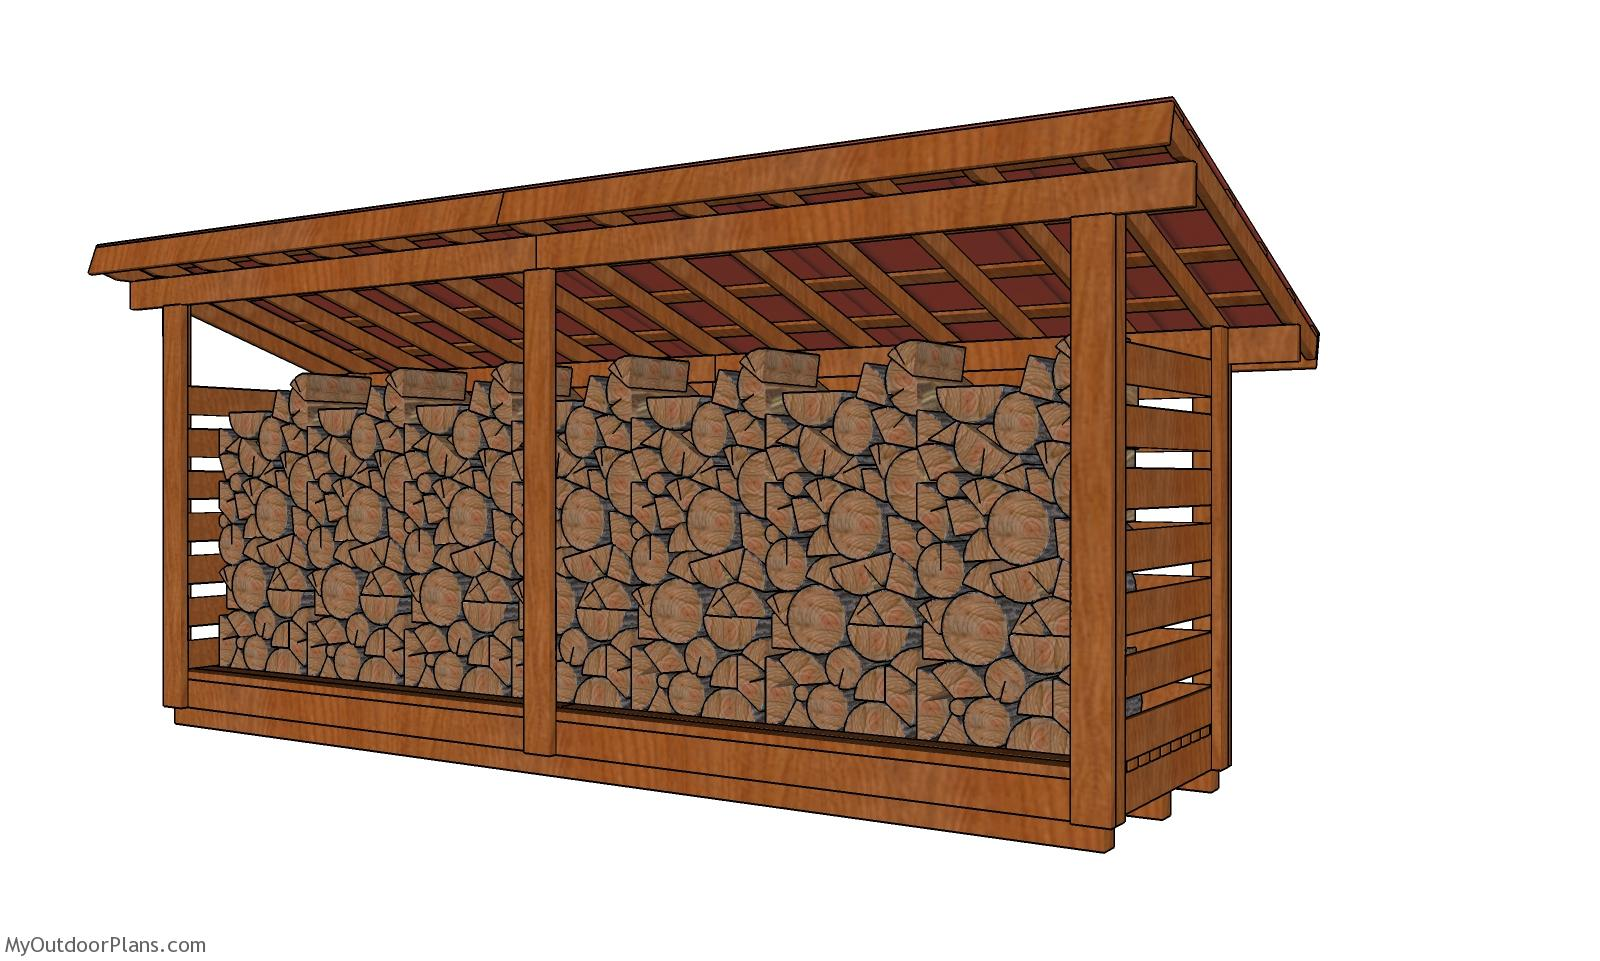 4x16 3 Cord Firewood Shed Plans